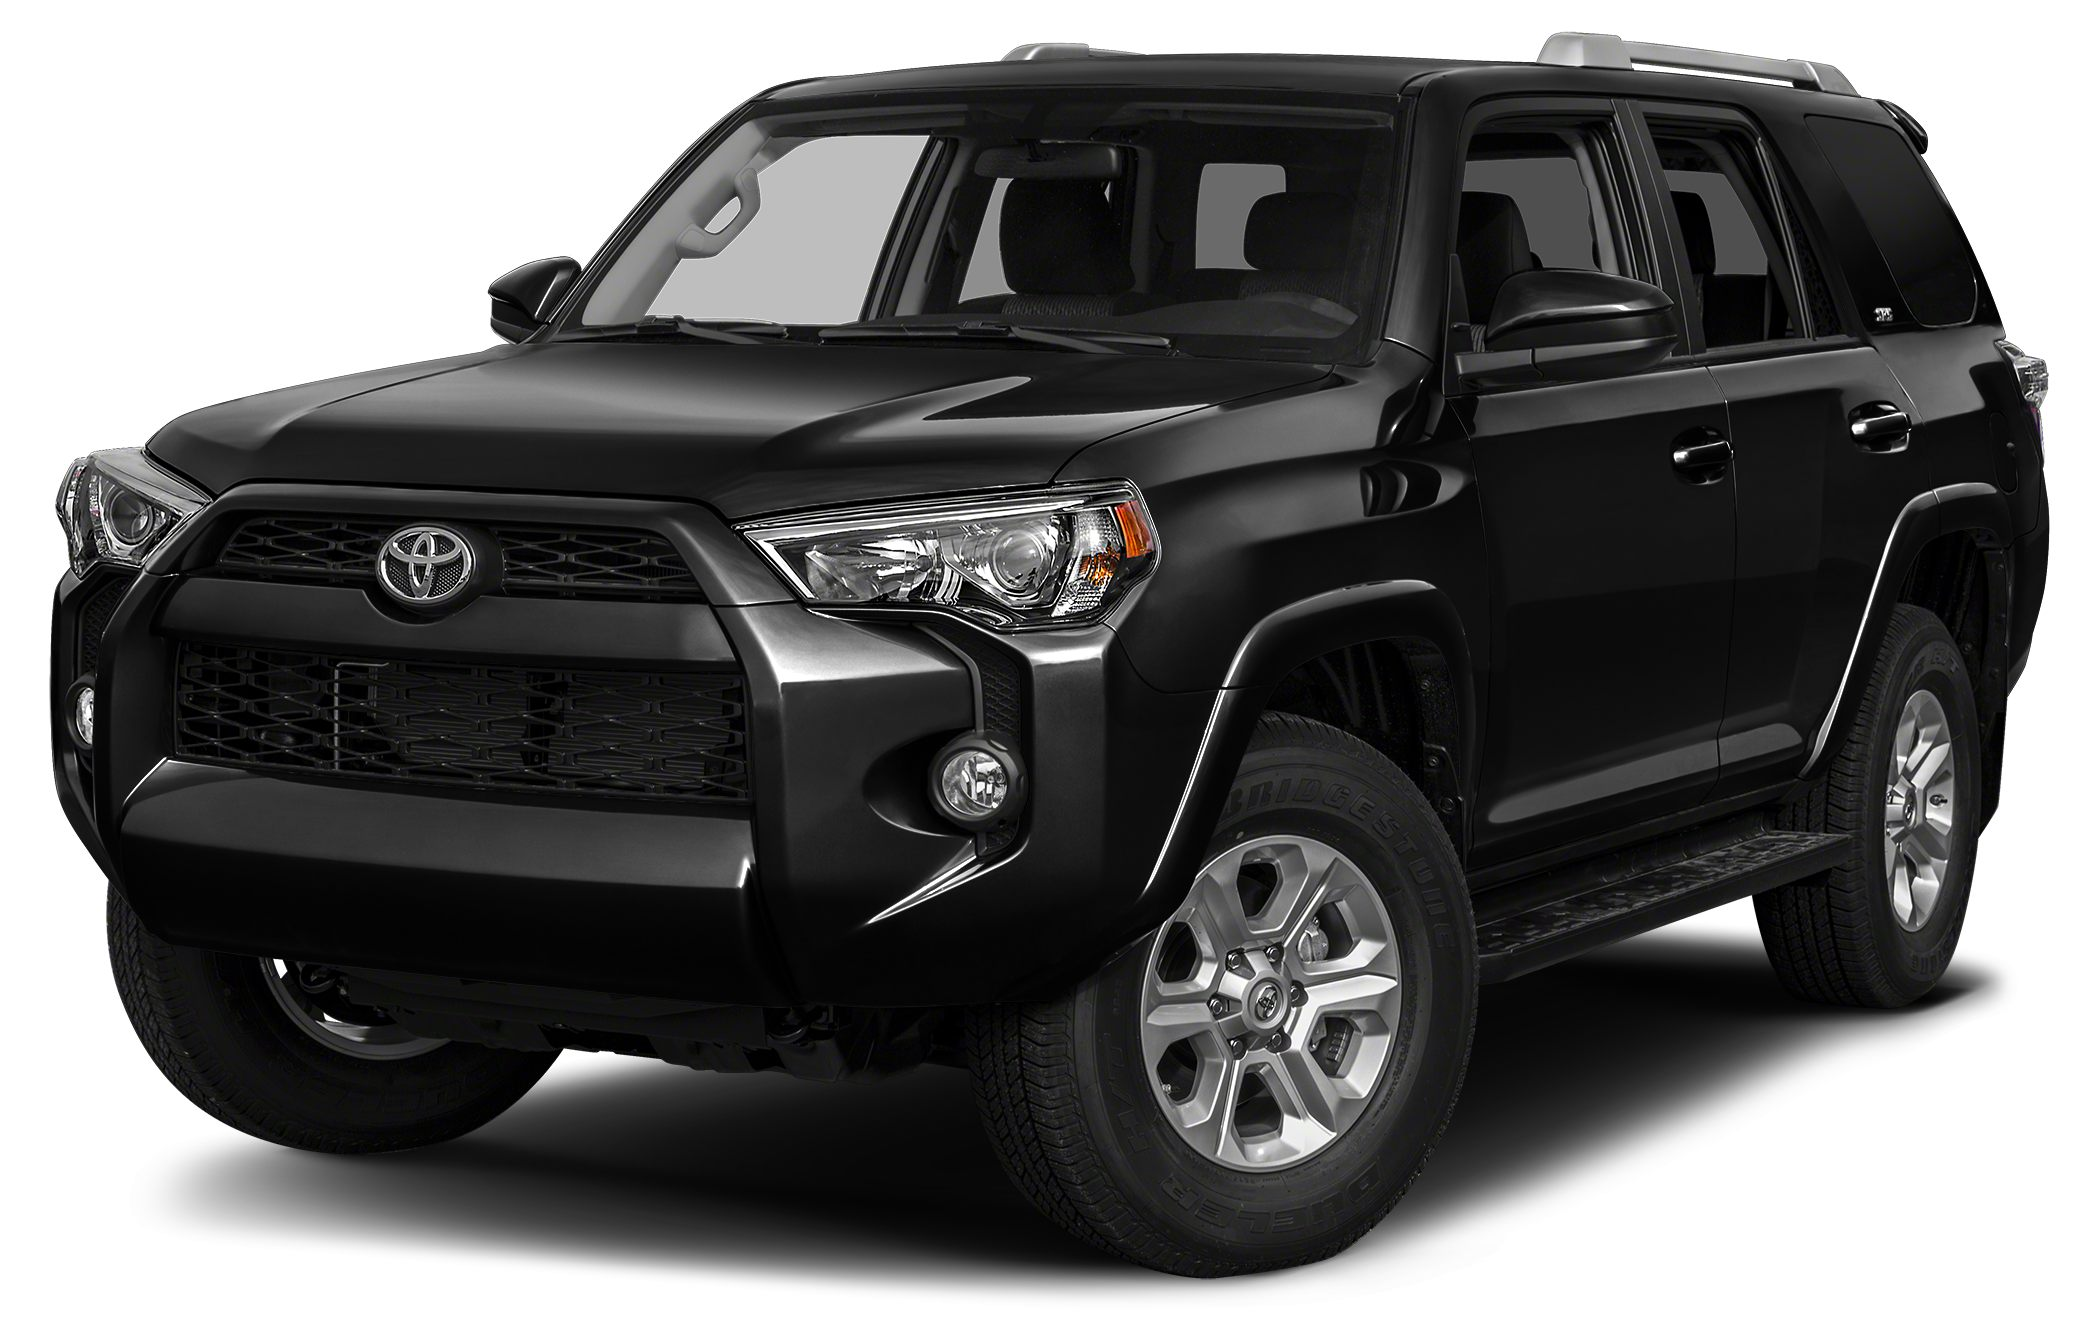 2014 Toyota 4Runner SR5 Win a steal on this 2014 Toyota 4Runner SR5 before someone else snatches i